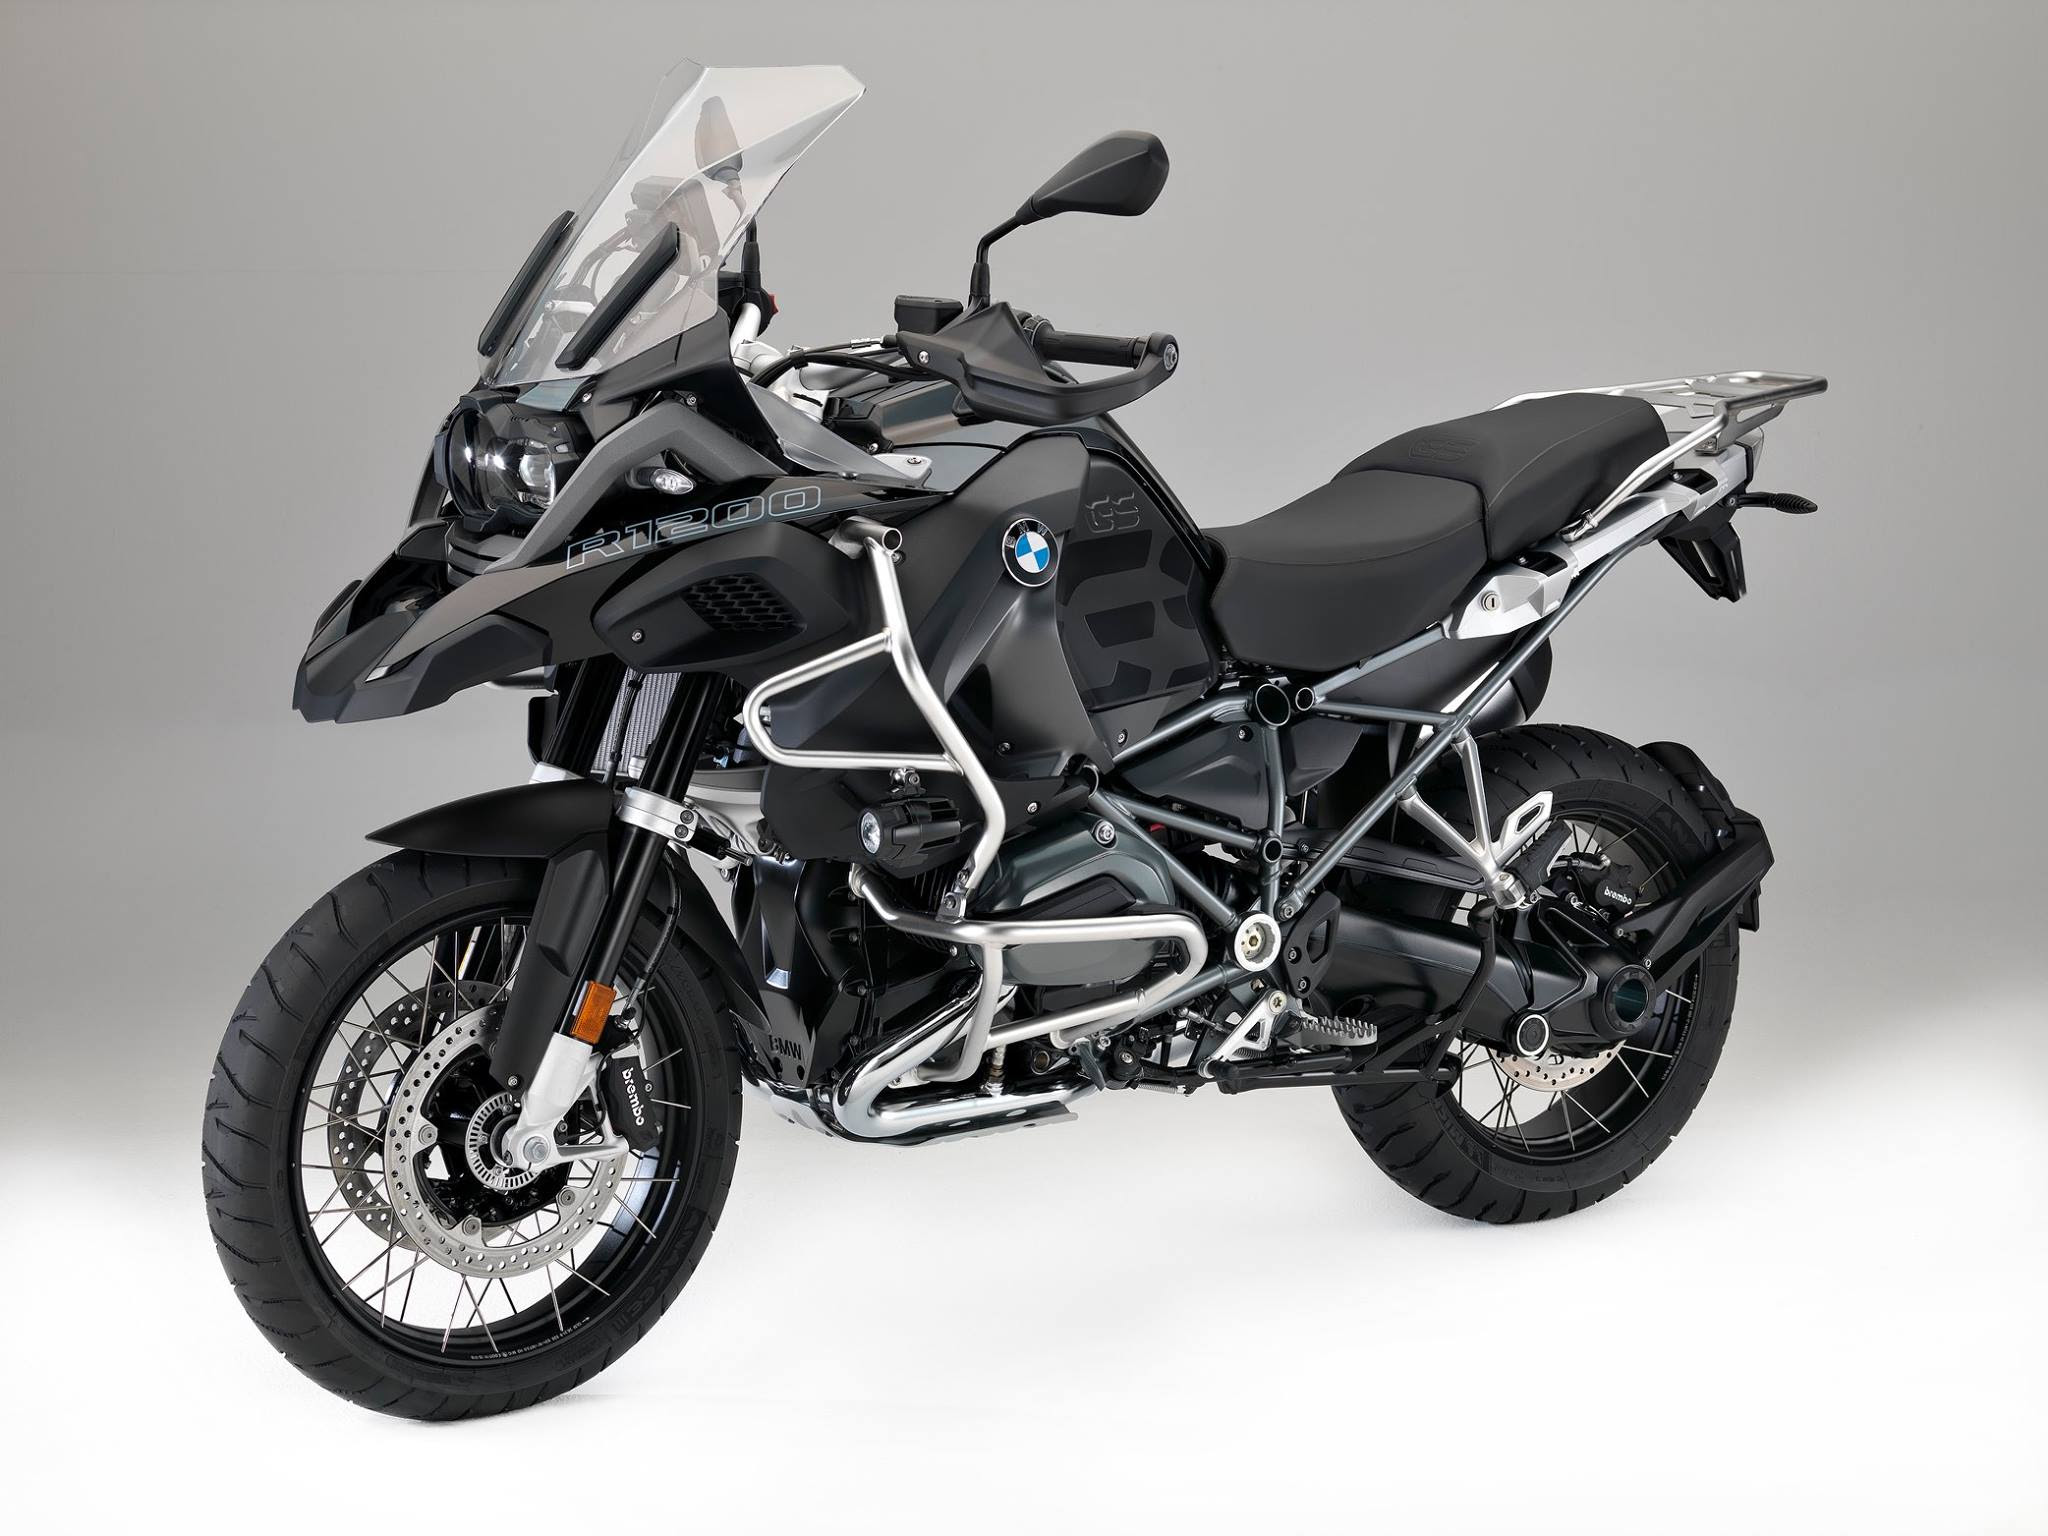 2017 bmw r1200gs rumors 2017 2018 best car reviews 2017 bmw r1200gs ...